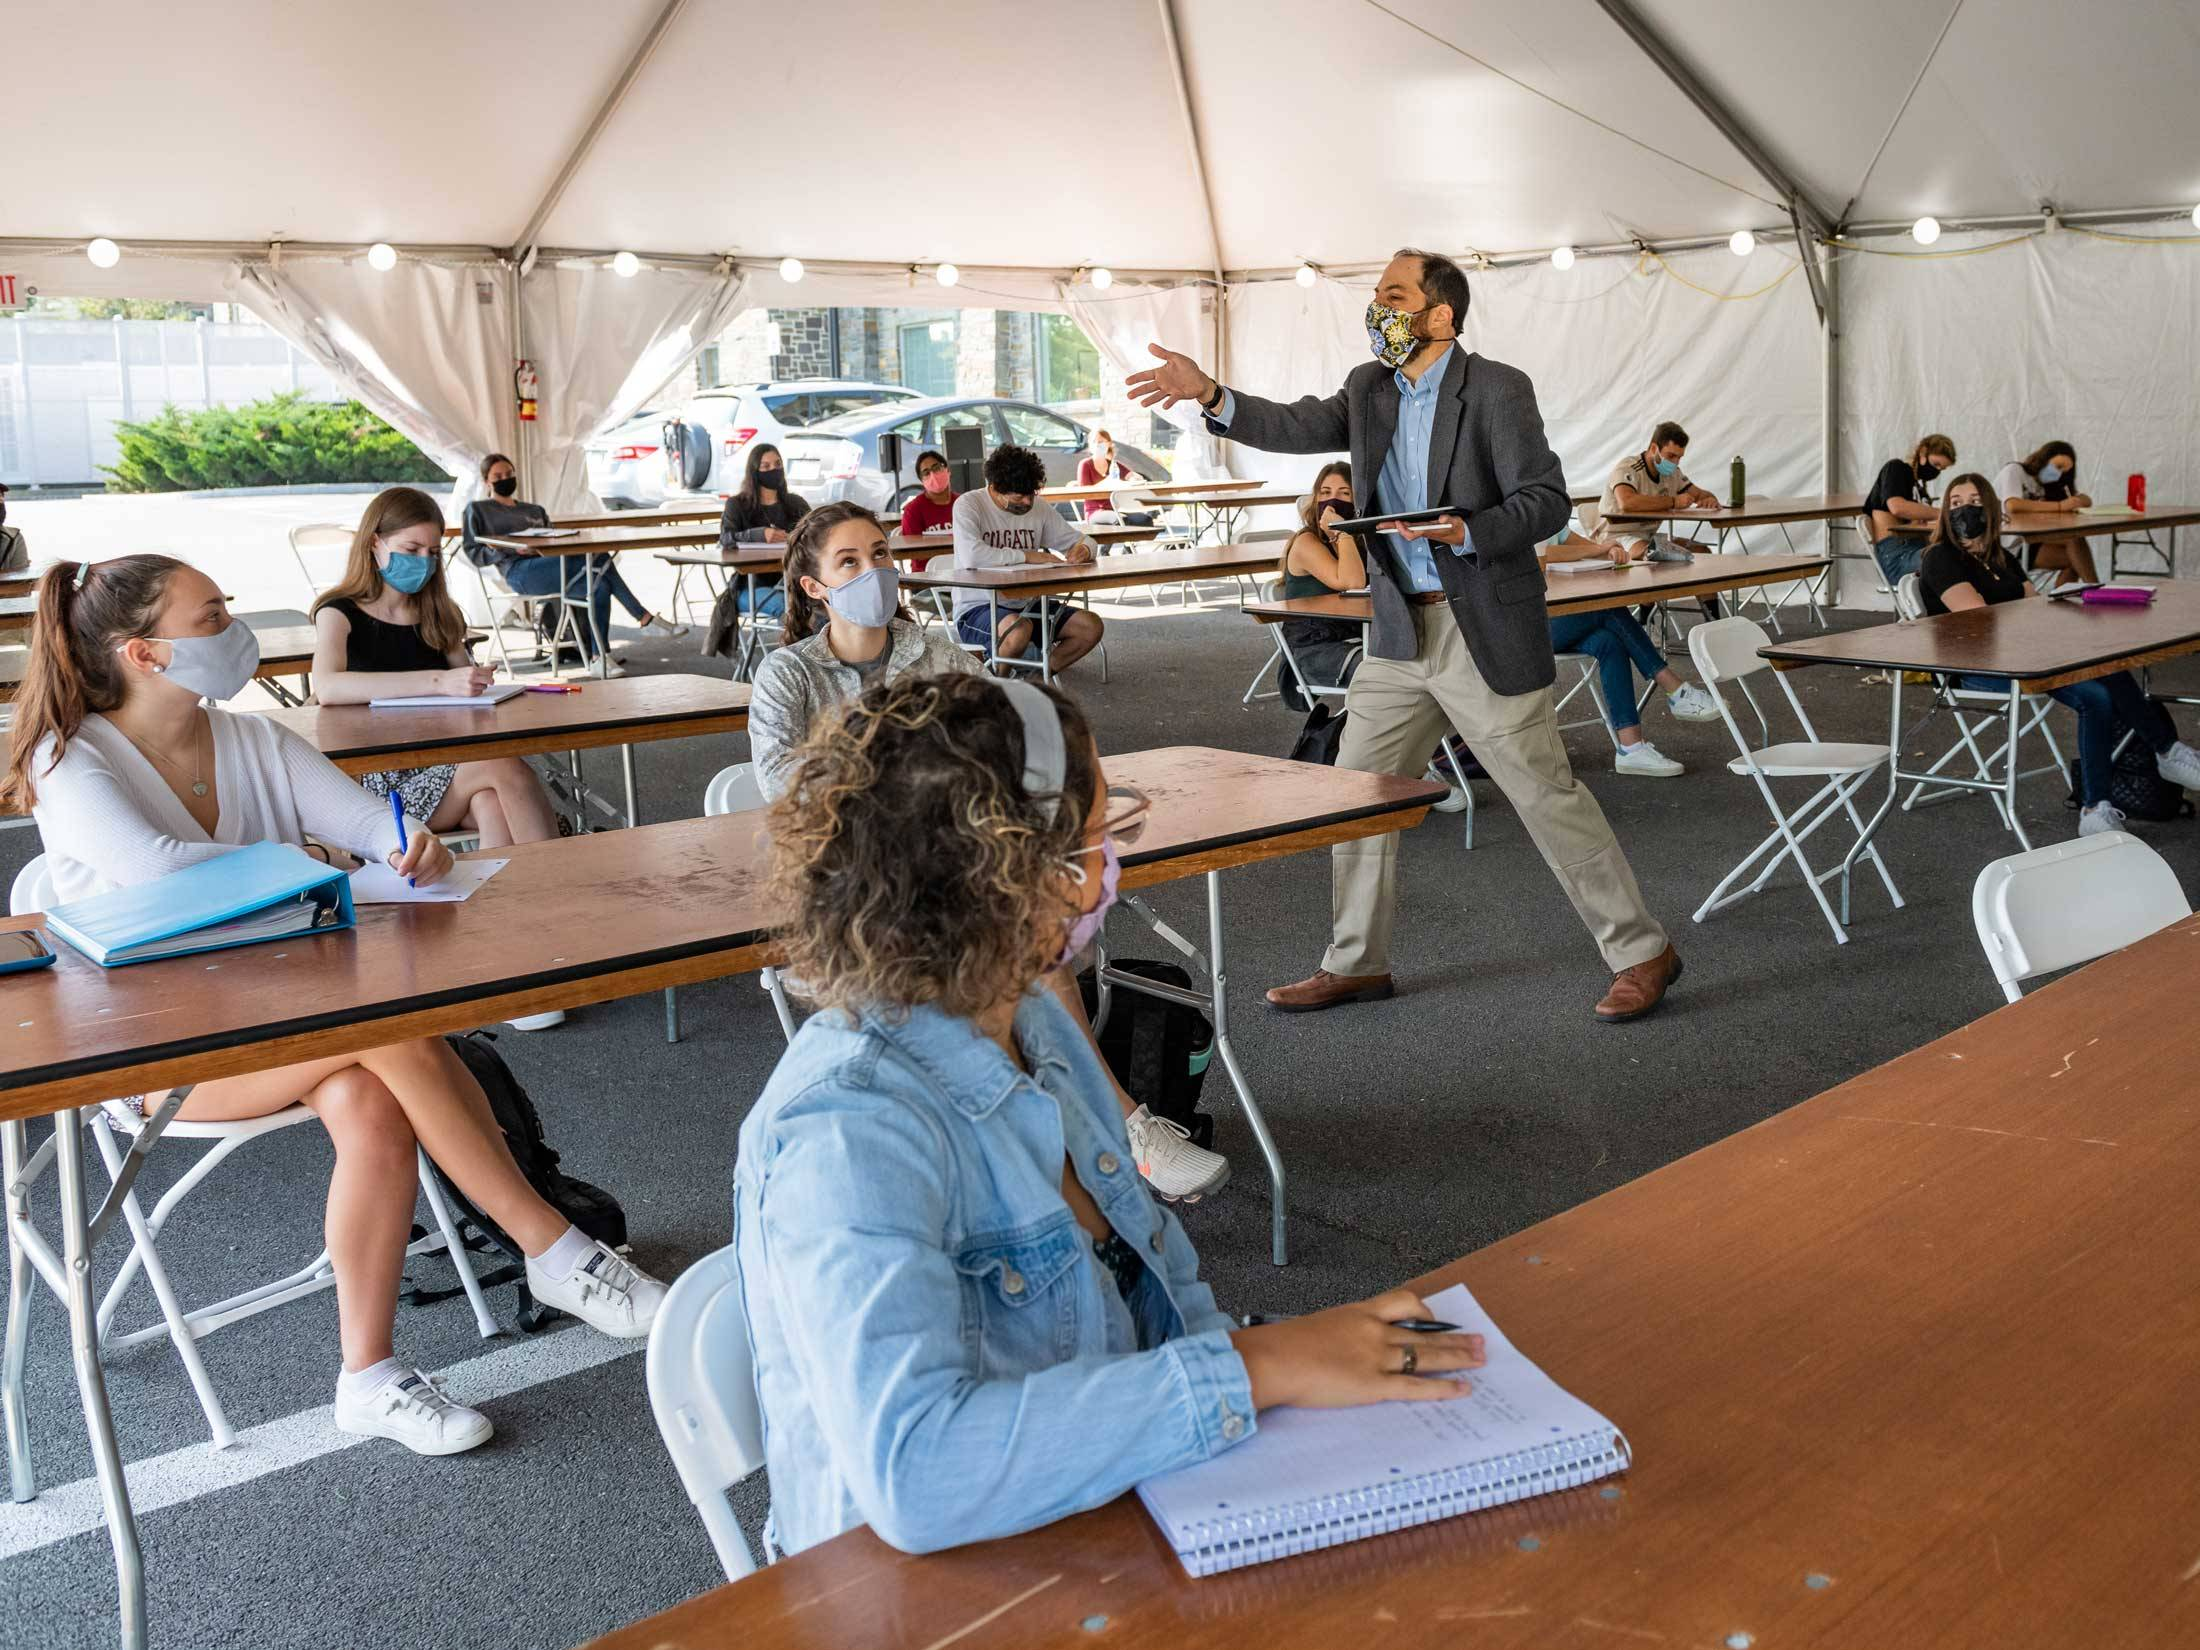 Students take class in tent